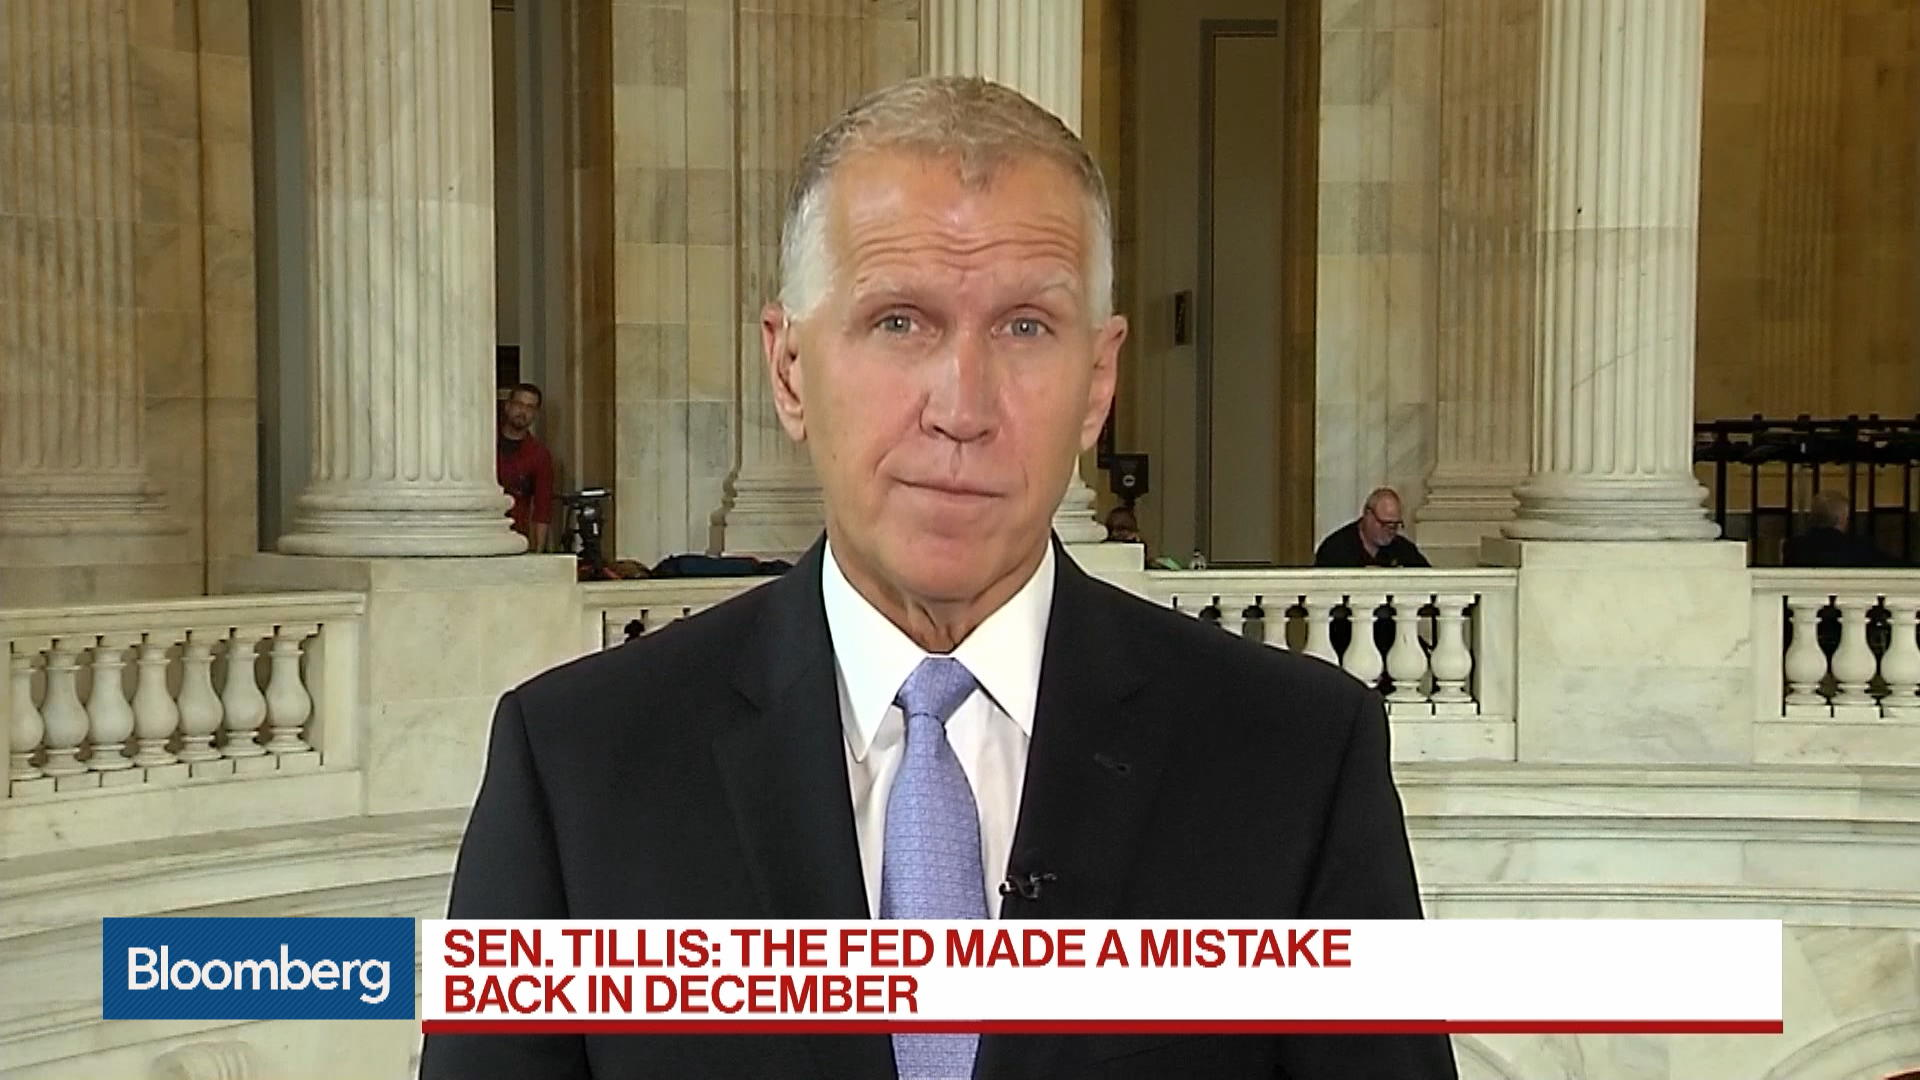 Trump Could Probably Consider Another Fed Chair, Says Sen. Tillis